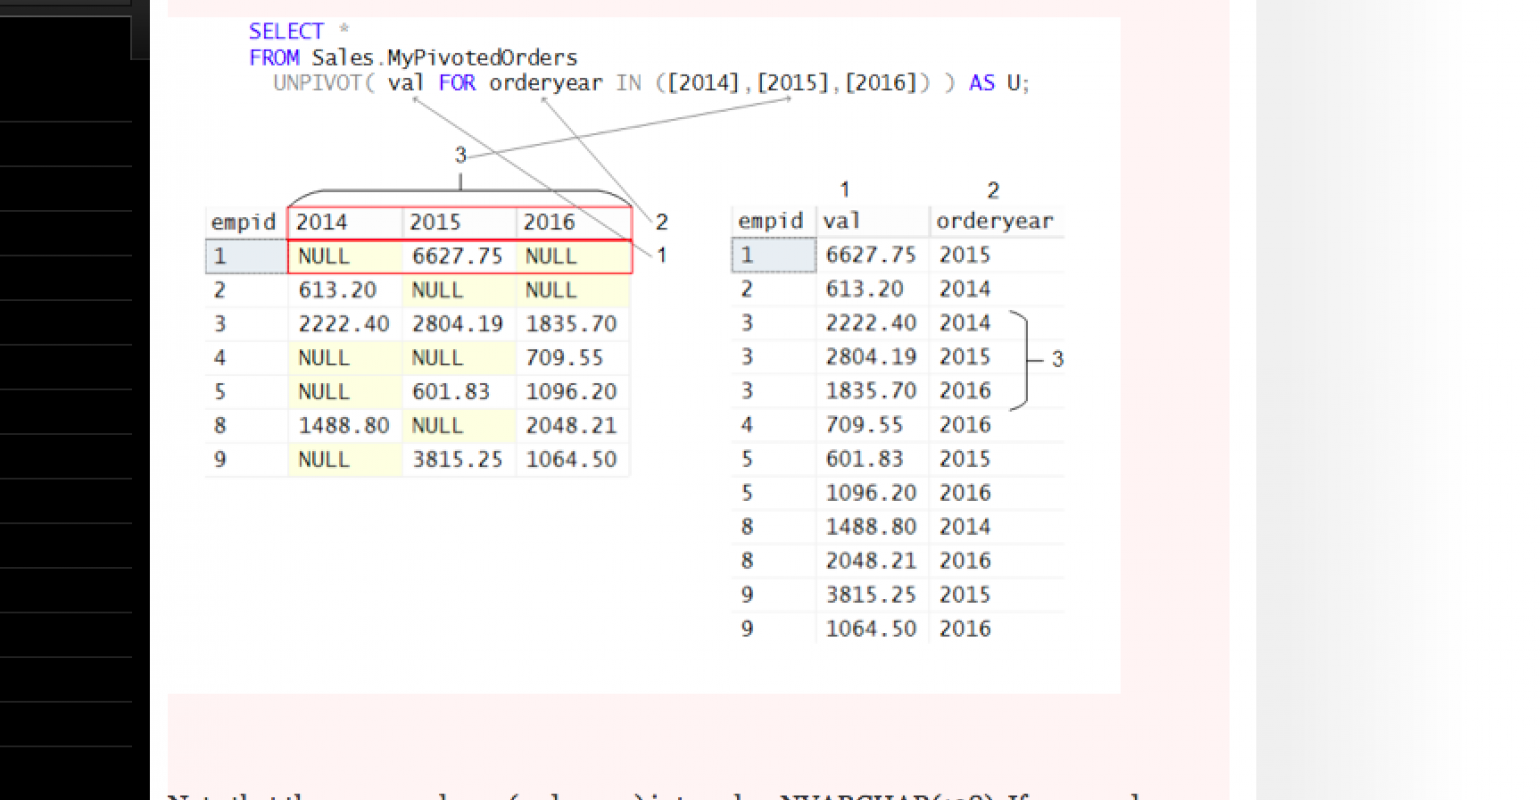 Logical Query Processing Part 5: The FROM Clause and UNPIVOT